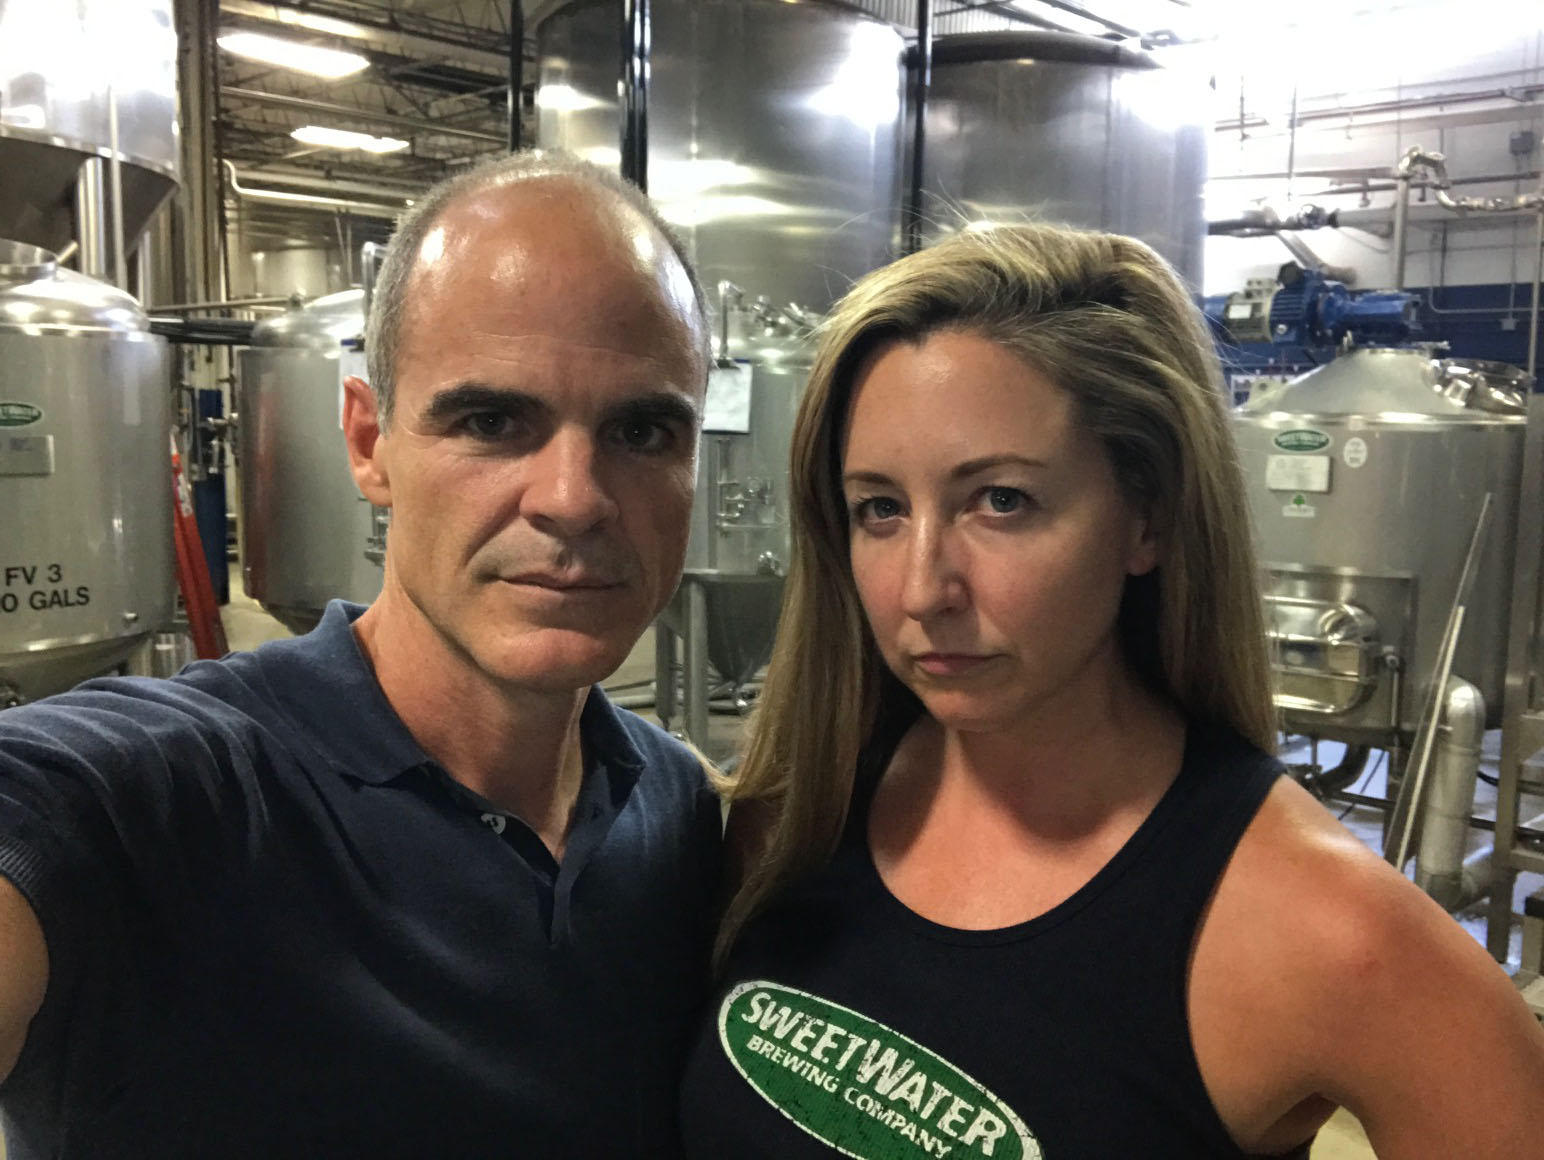 Doug Stamper & SweetWater: Together for IPA Day